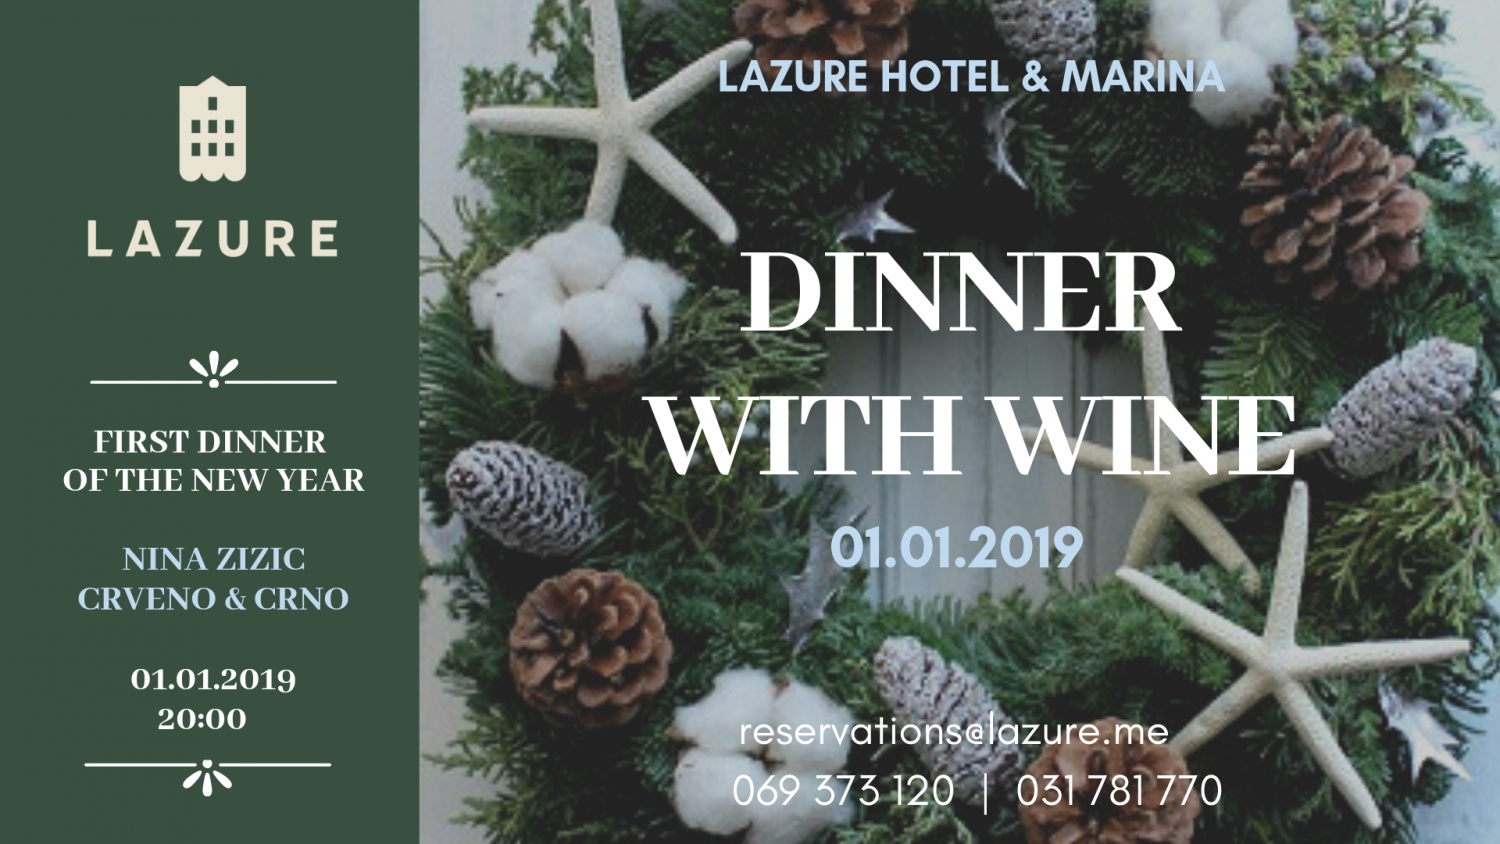 Dinner with Wine at Lazure Hotel & Marina